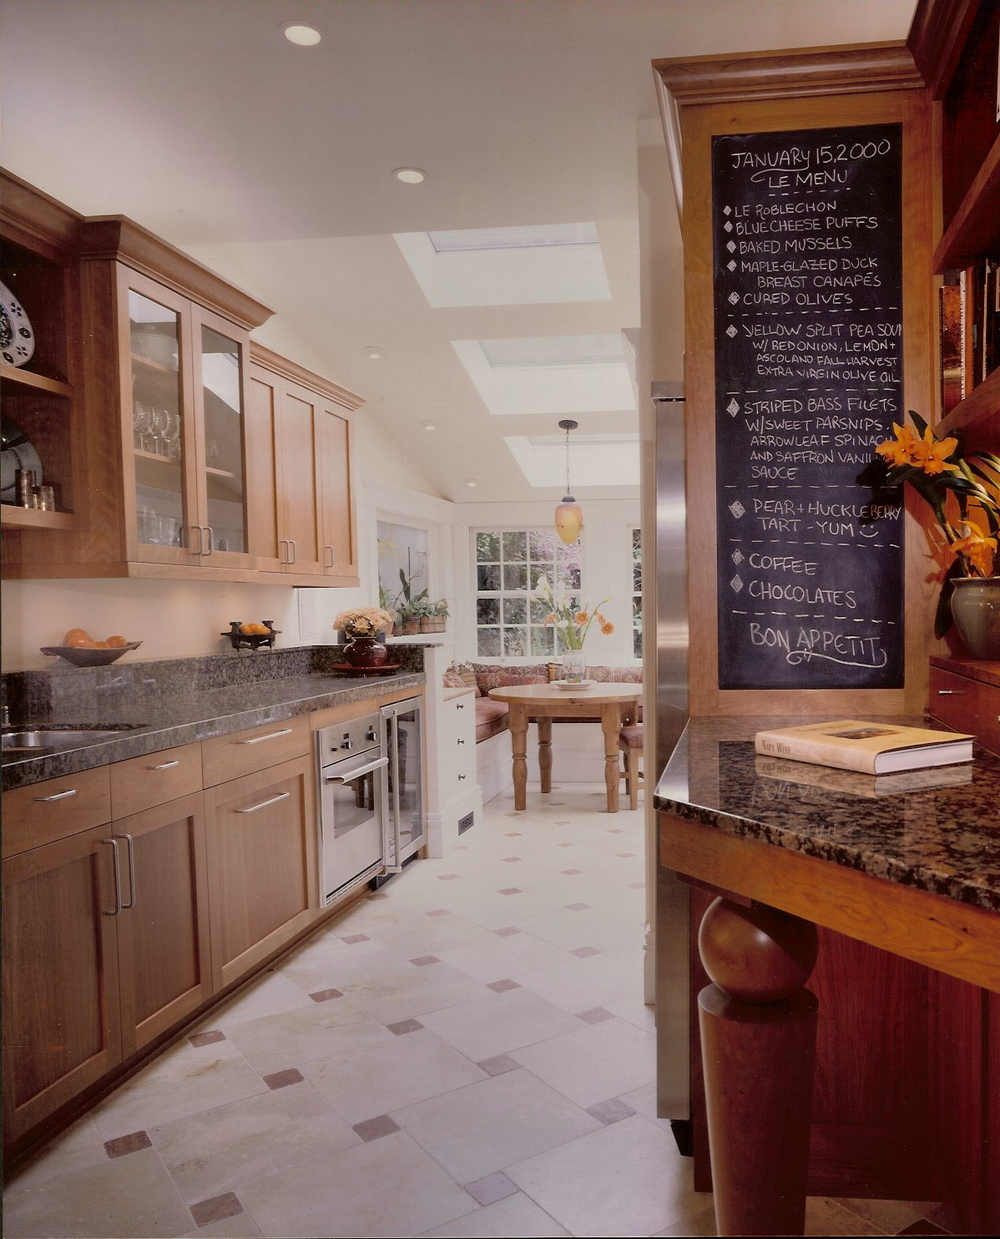 The hand-turned custom leg on the stand-up desk is a great welcoming gesture at the entrance to this Cherry Kitchen. This kitchen I did is 15 years old, and yet still retains a modern edge for today's tastes. Always fun to go back into my portfolio and see my old designs still working! These clients obviously loved to cook and a working kitchen should have many levels of usage.